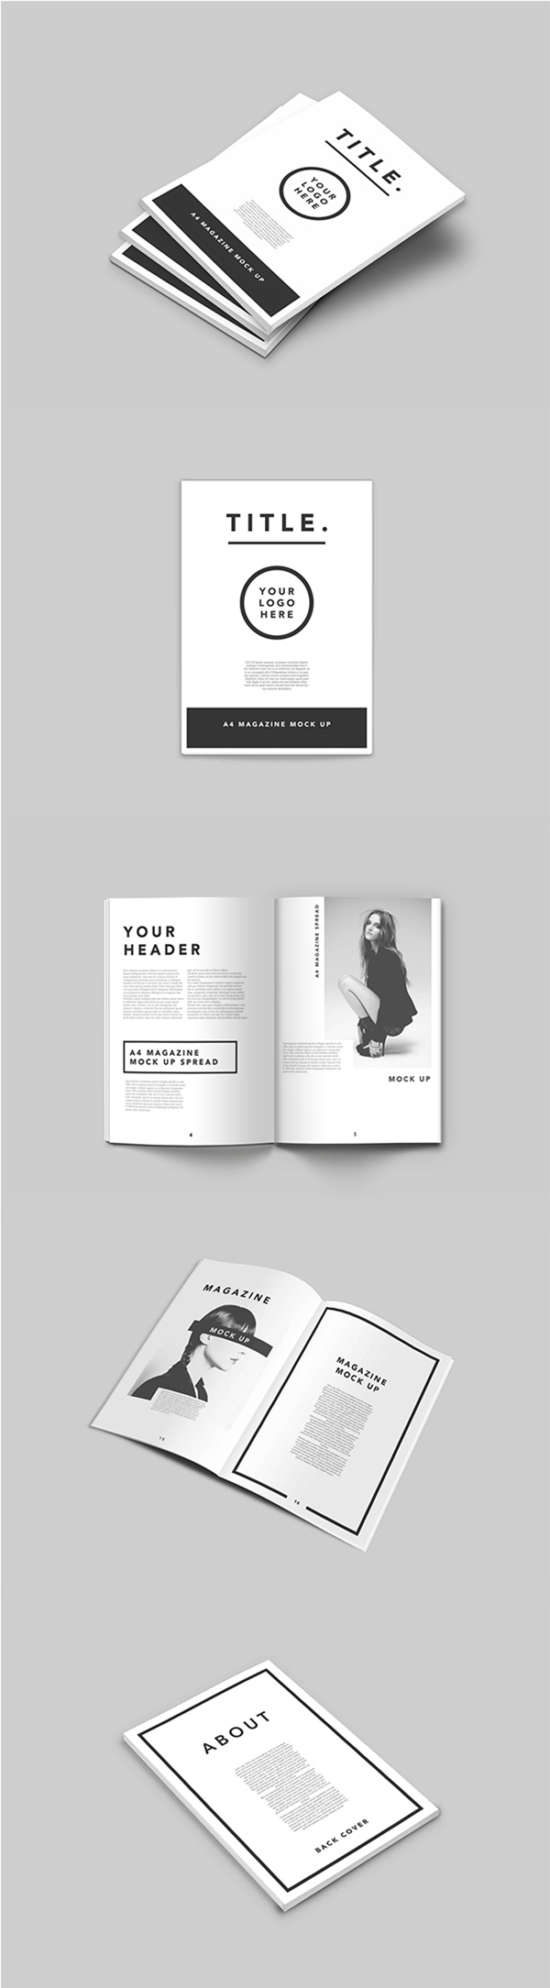 brochure mockup template - 75 free mockup templates book brochures and magazine